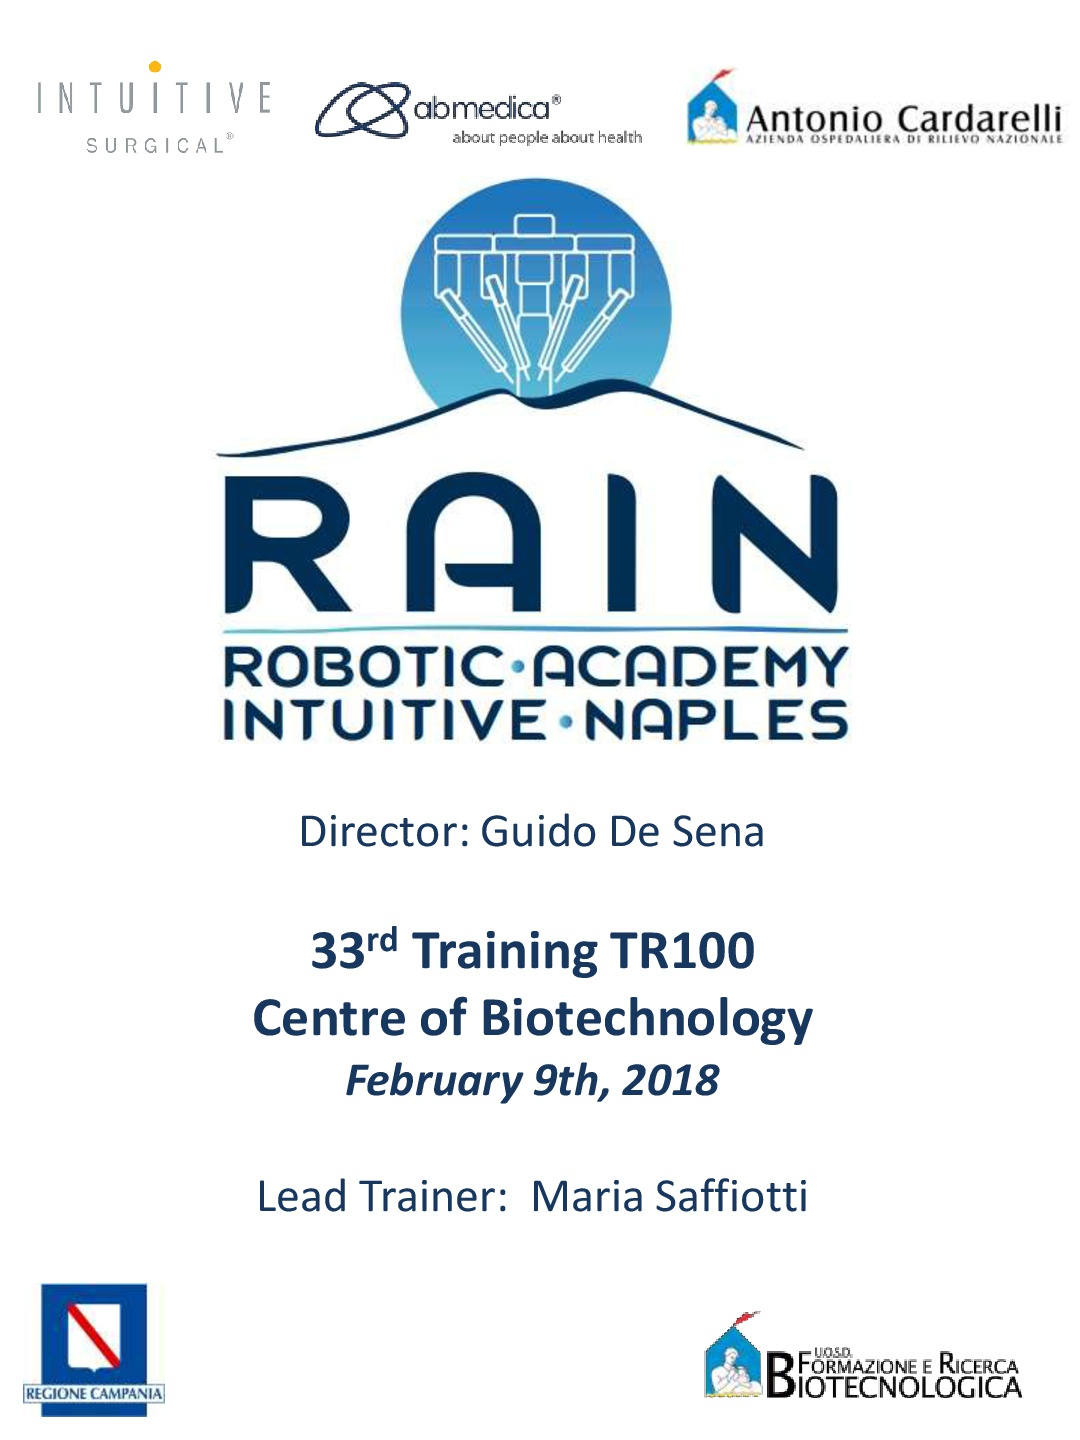 RAIN - Robotic Academy Intuitive Naples - 32nd Training TR100